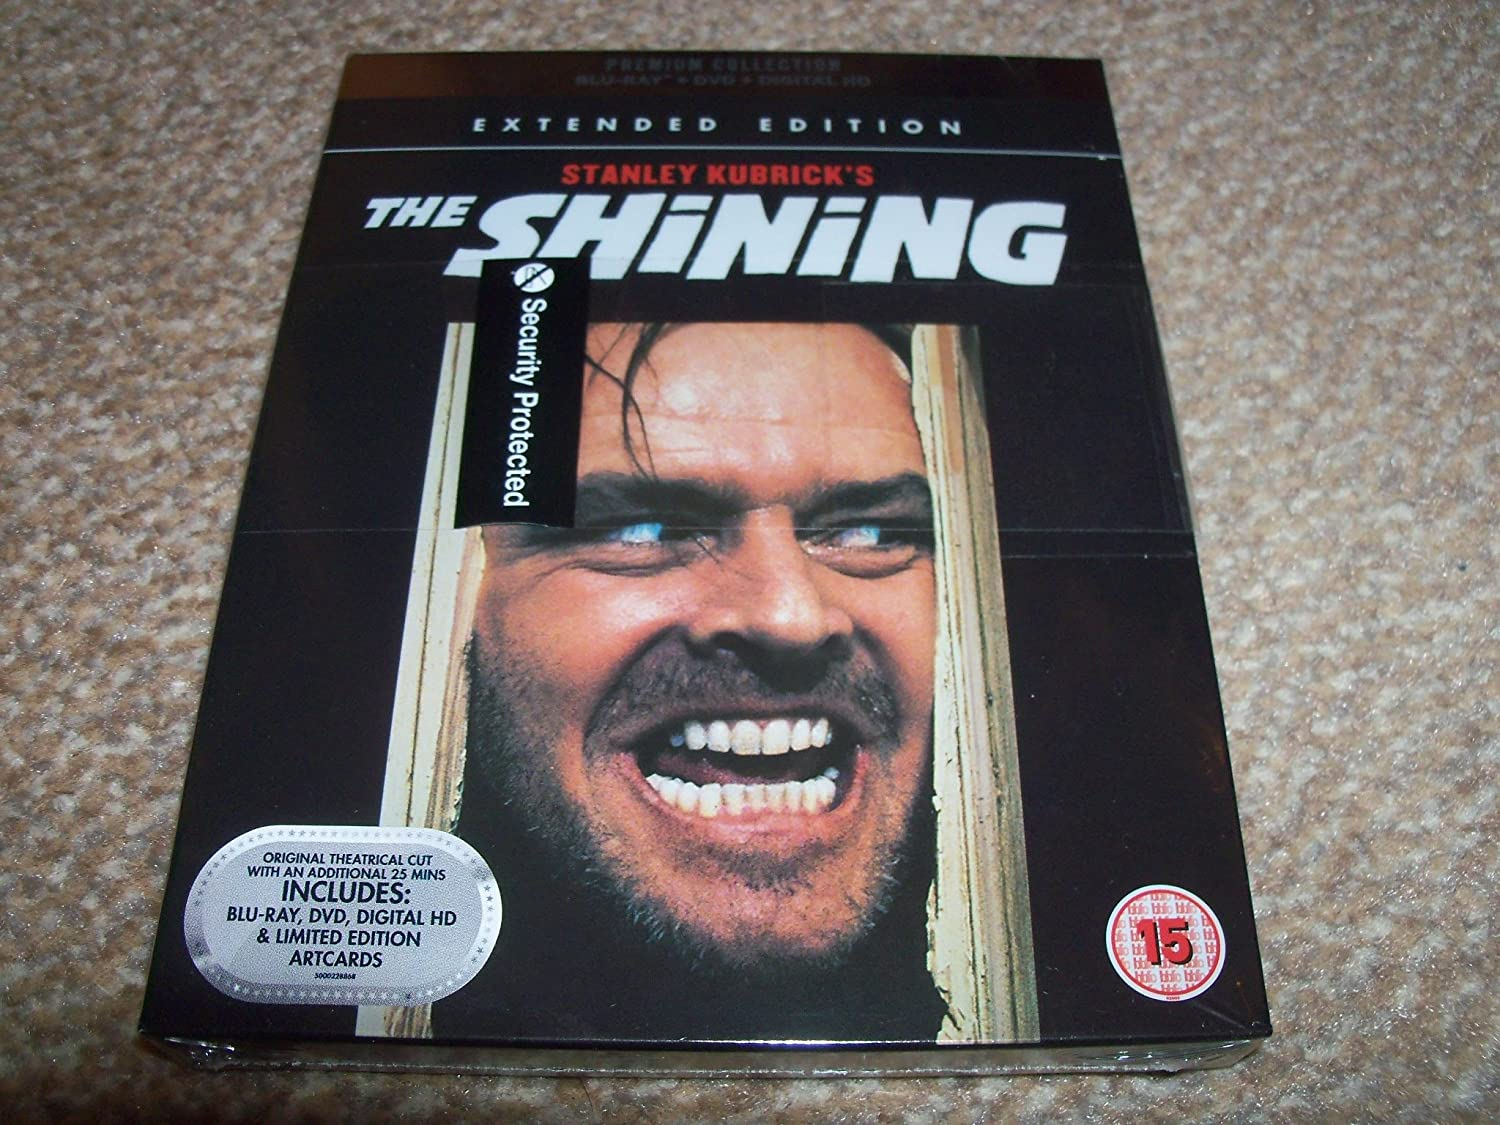 The Shining Extended Version Blu Ray / Includes DVD + Art Cards / Digital Download: Amazon.es: Cine y Series TV